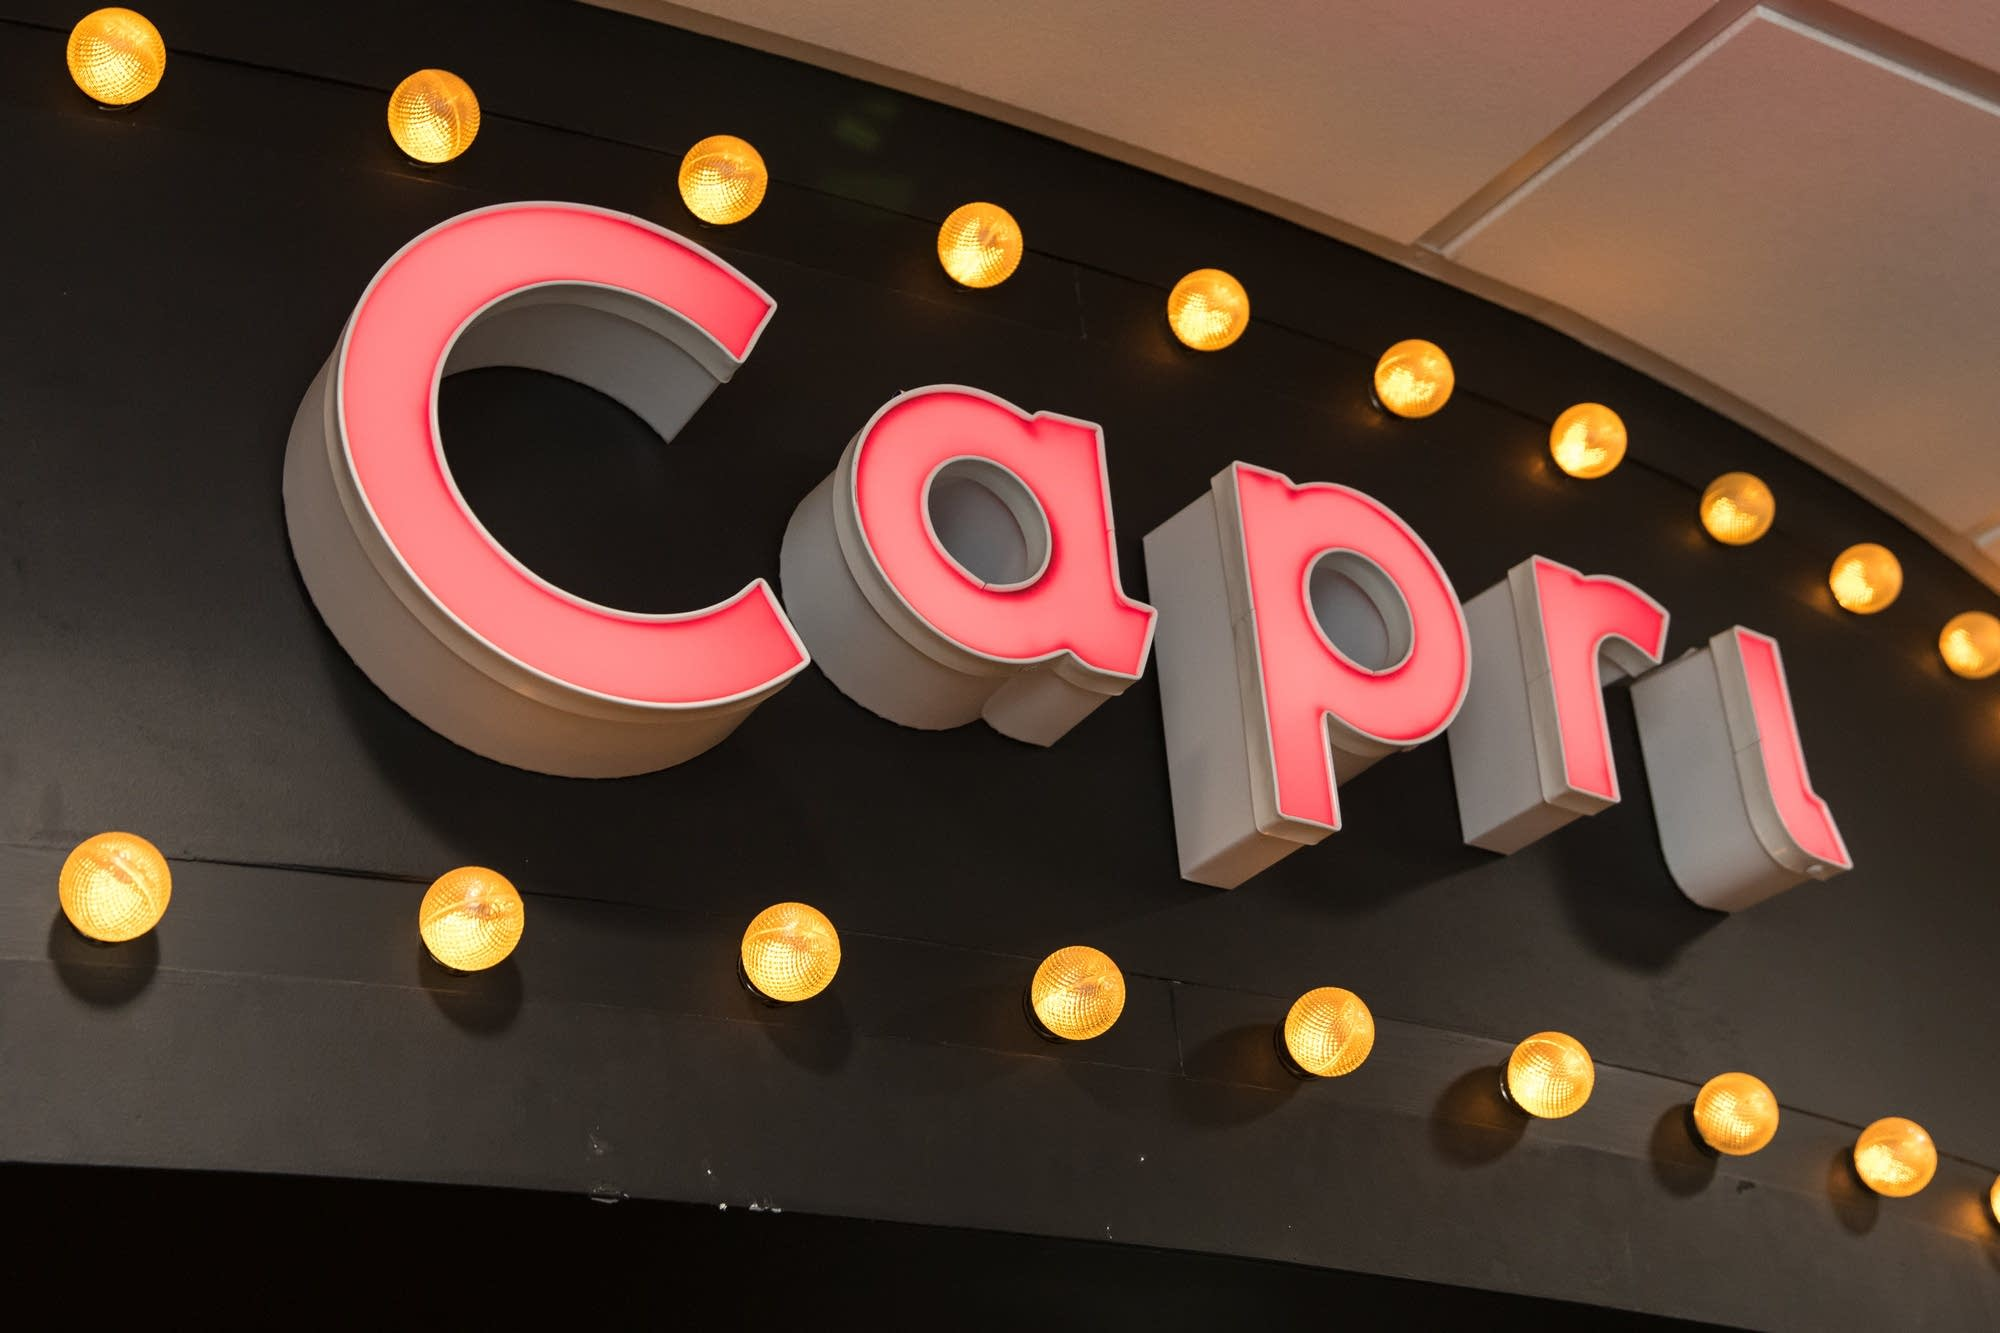 A fluorescent marque adorns the entrance of the Capri Theater.